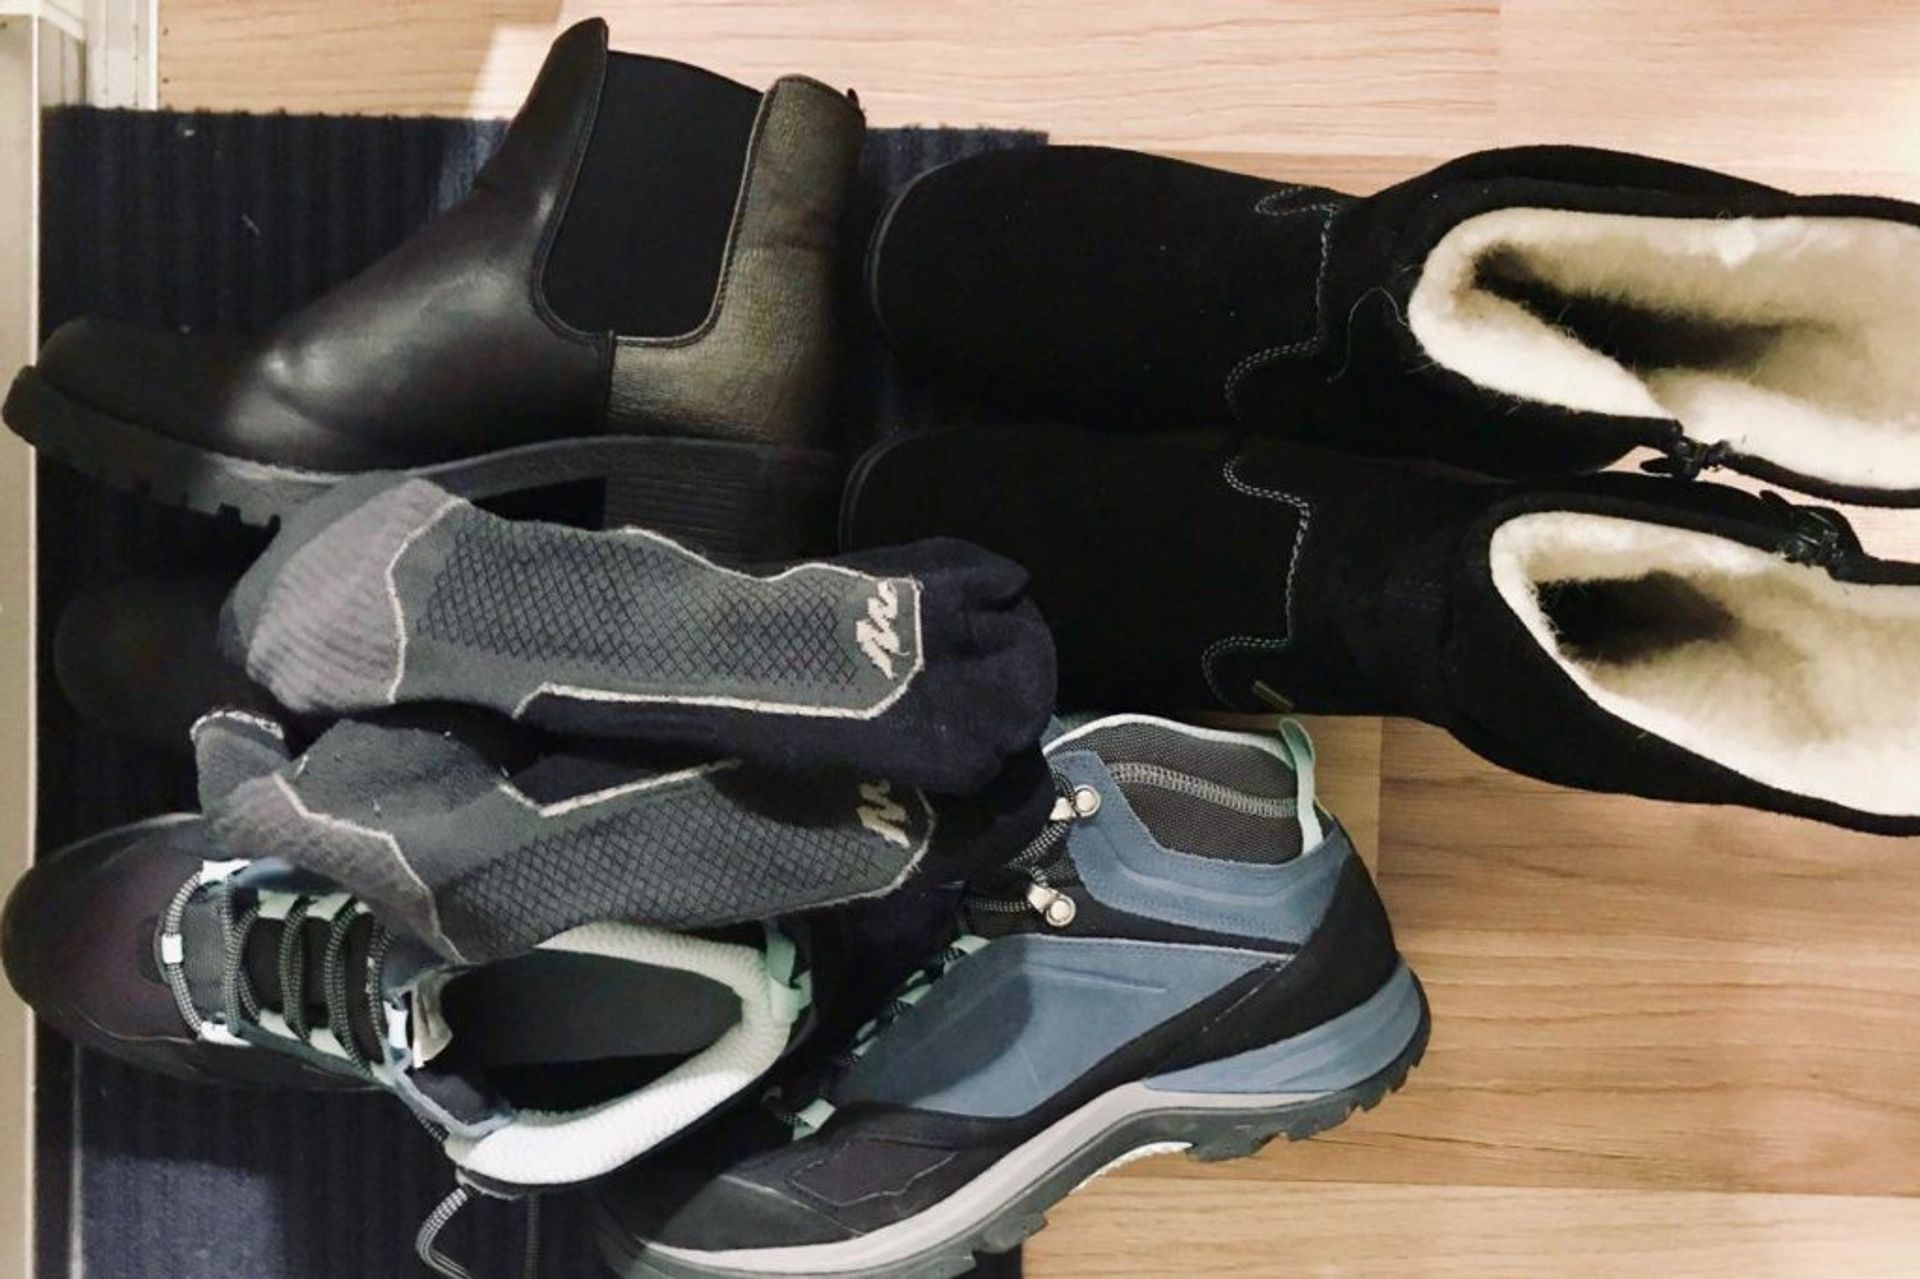 3 pairs of warm boots and thermo socks.